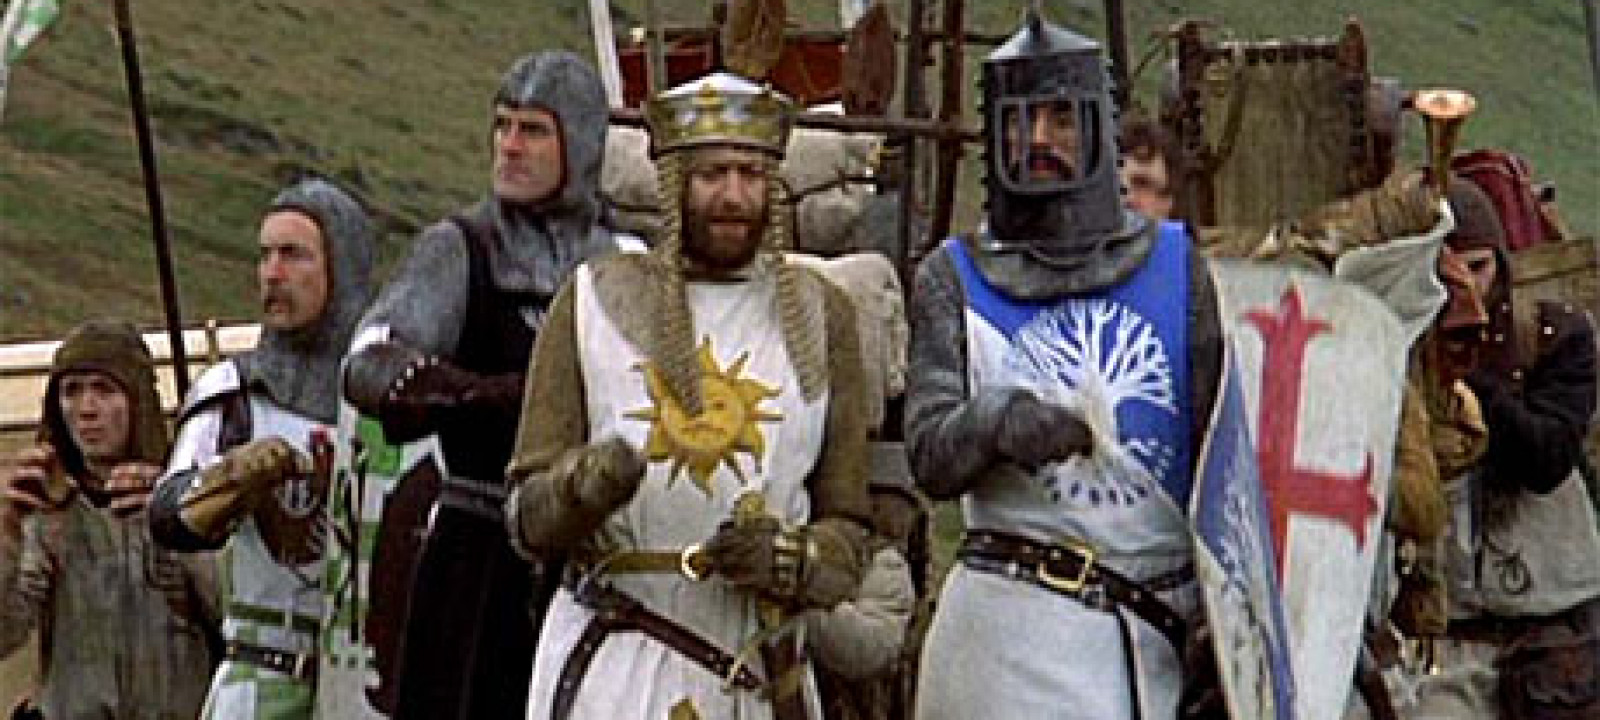 Nice wallpapers Monty Python And The Holy Grail 1600x720px